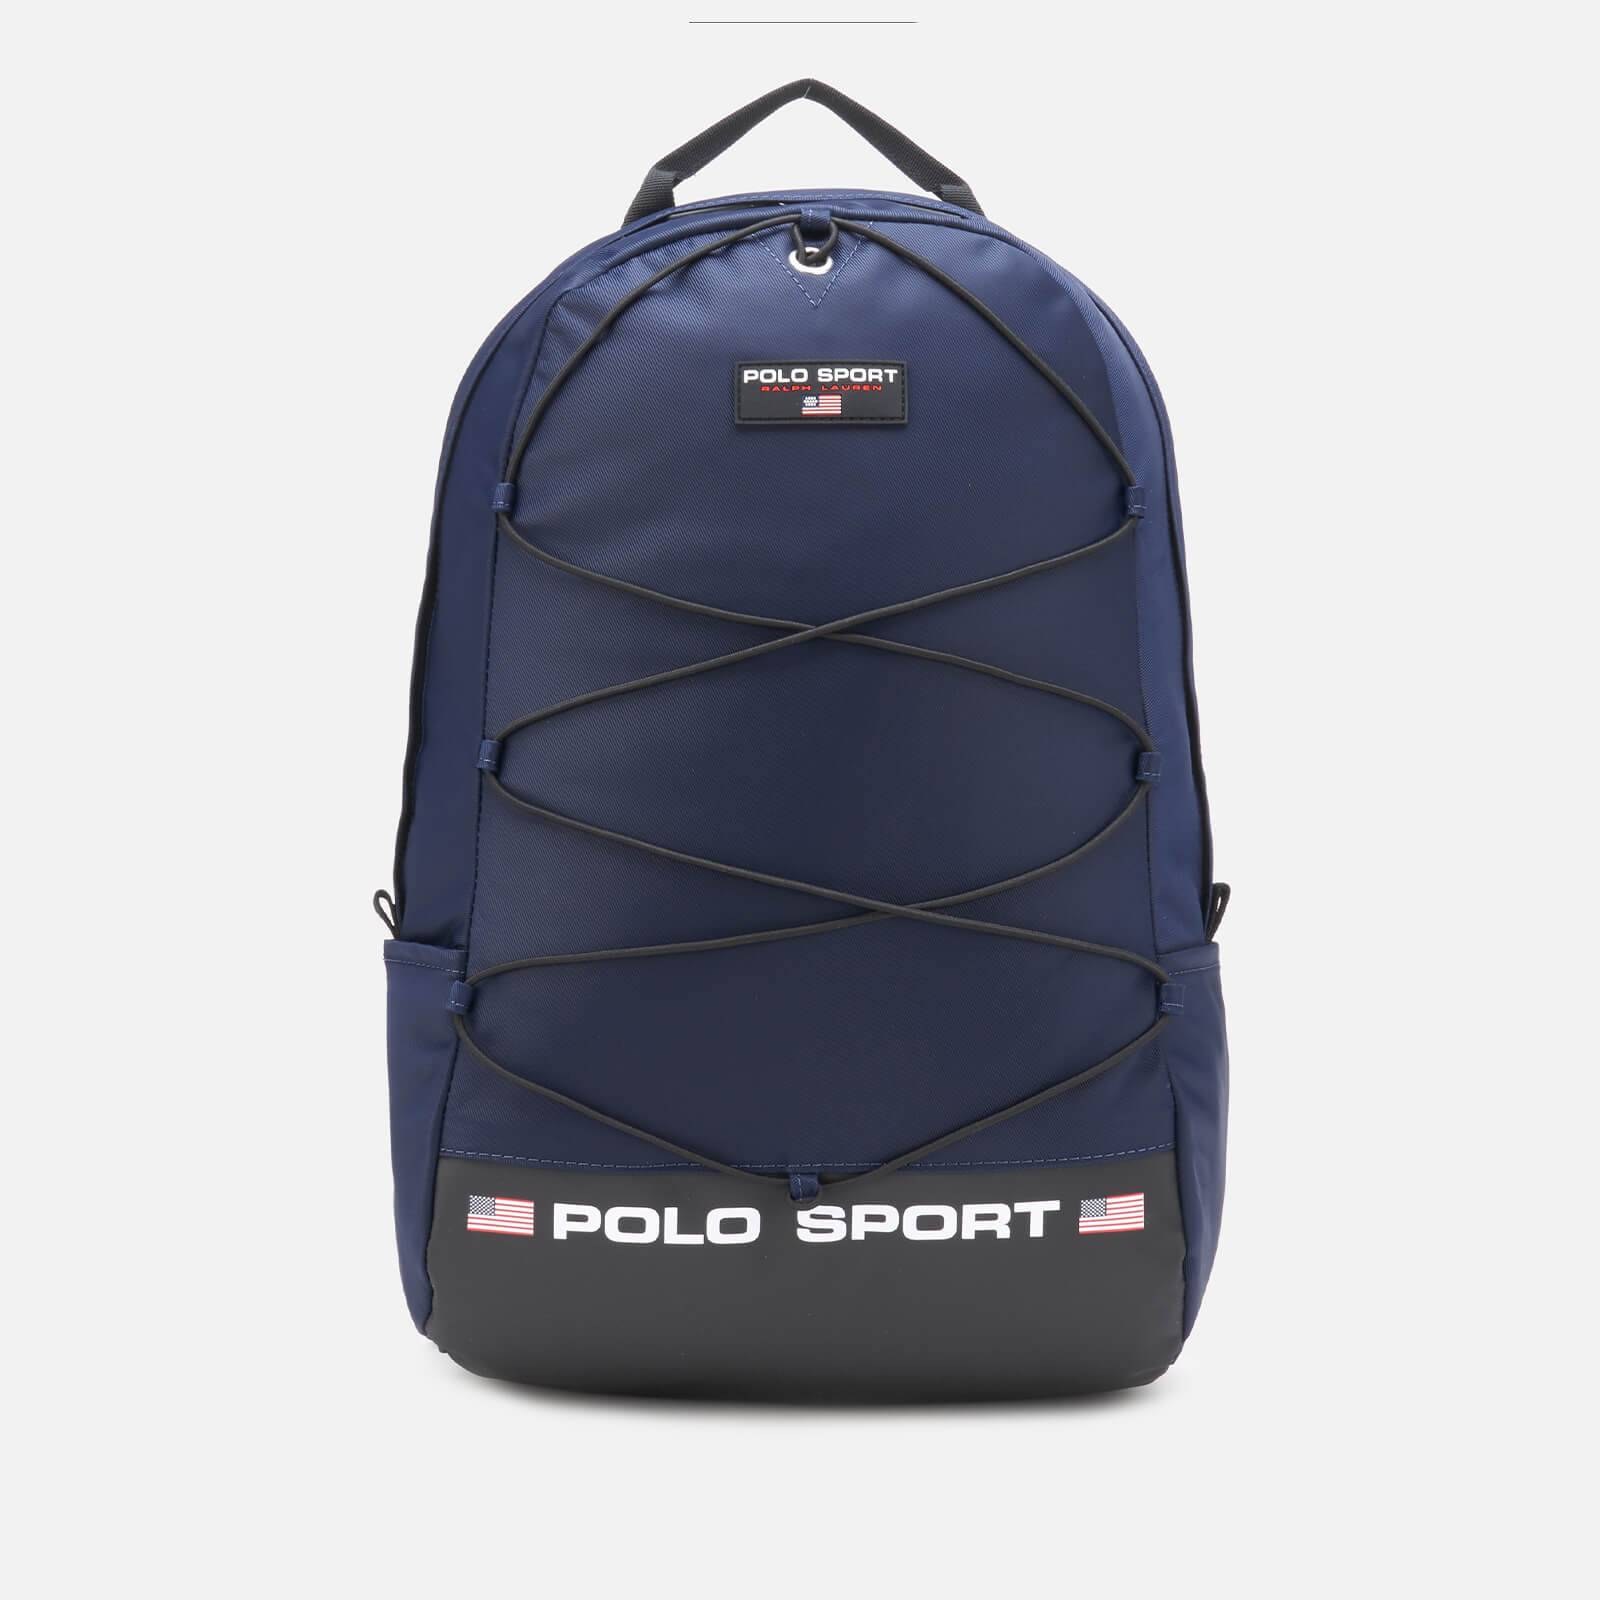 Ralph Lauren Polo Ralph Lauren Men's Polo Sport Backpack - Navy